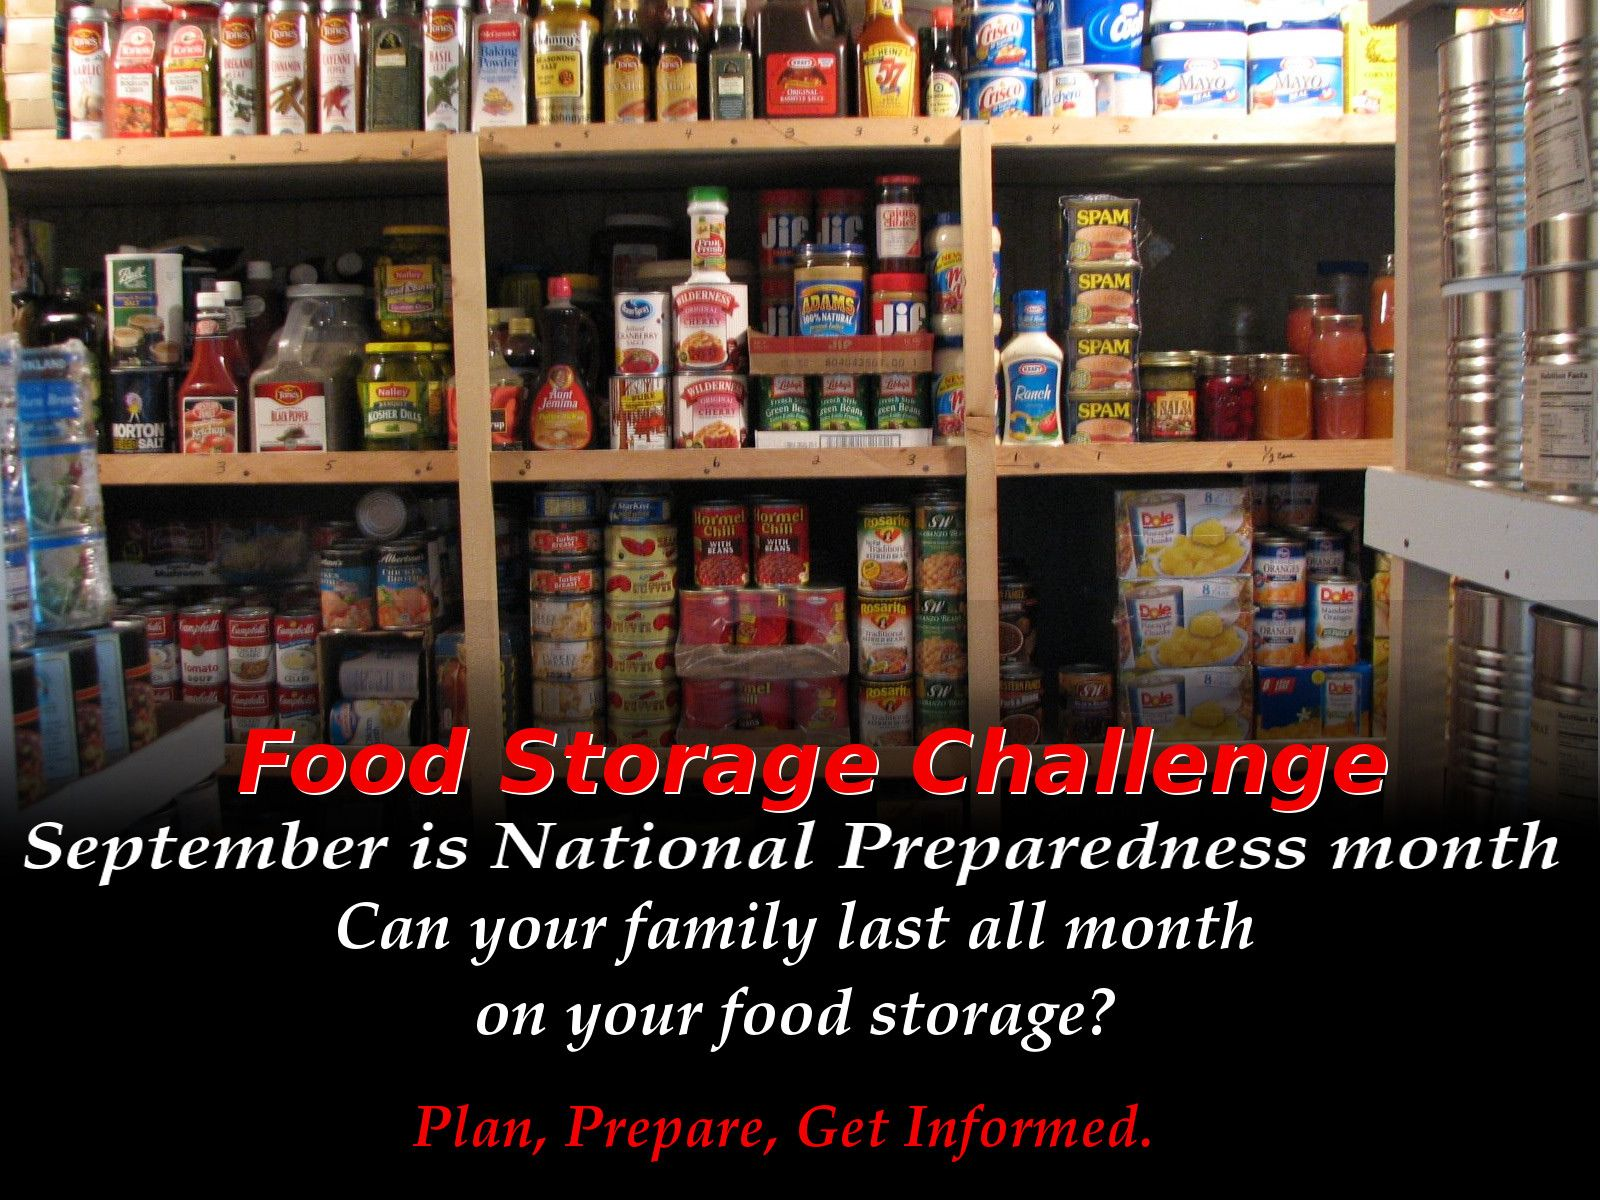 Poster for food storage challenge. Can you last a week, 2 weeks, 3 weeks, a whole month before needing to go to a store?